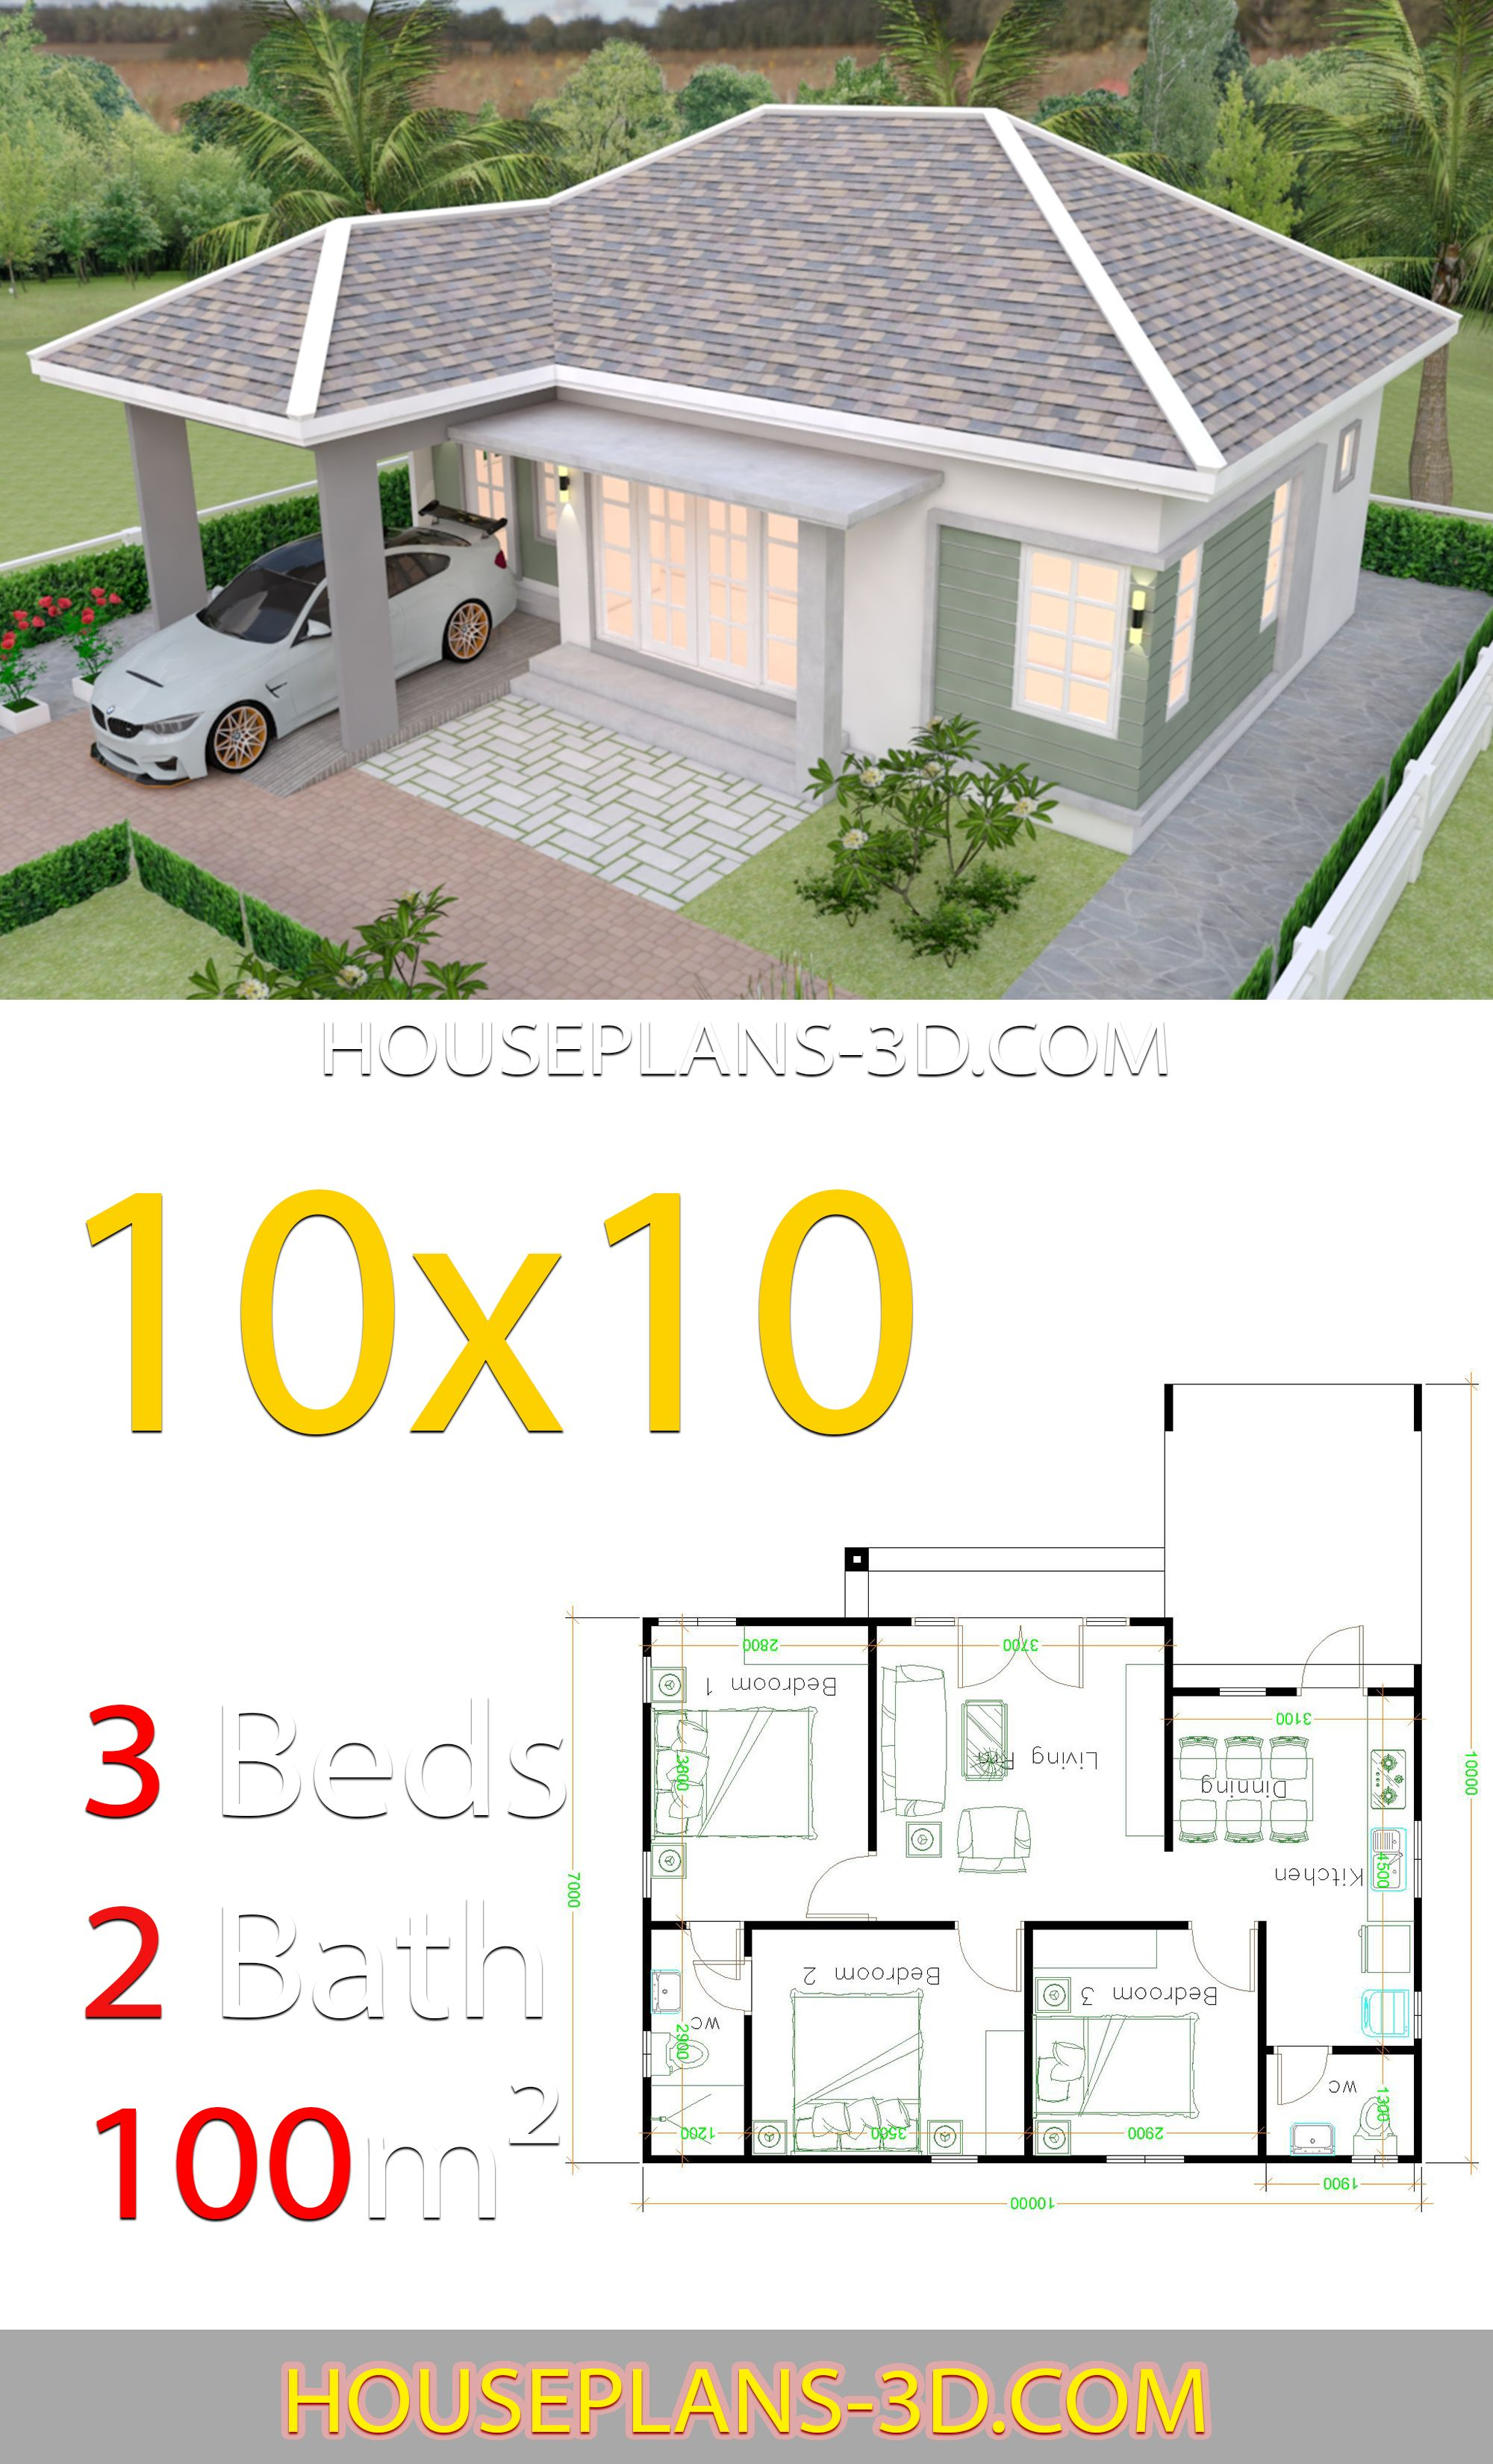 Interior House Design Plans 10x10 With 3 Bedrooms Full Plans House Plans 3d In 2020 Simple House Design Unique Small House Plans House Plans